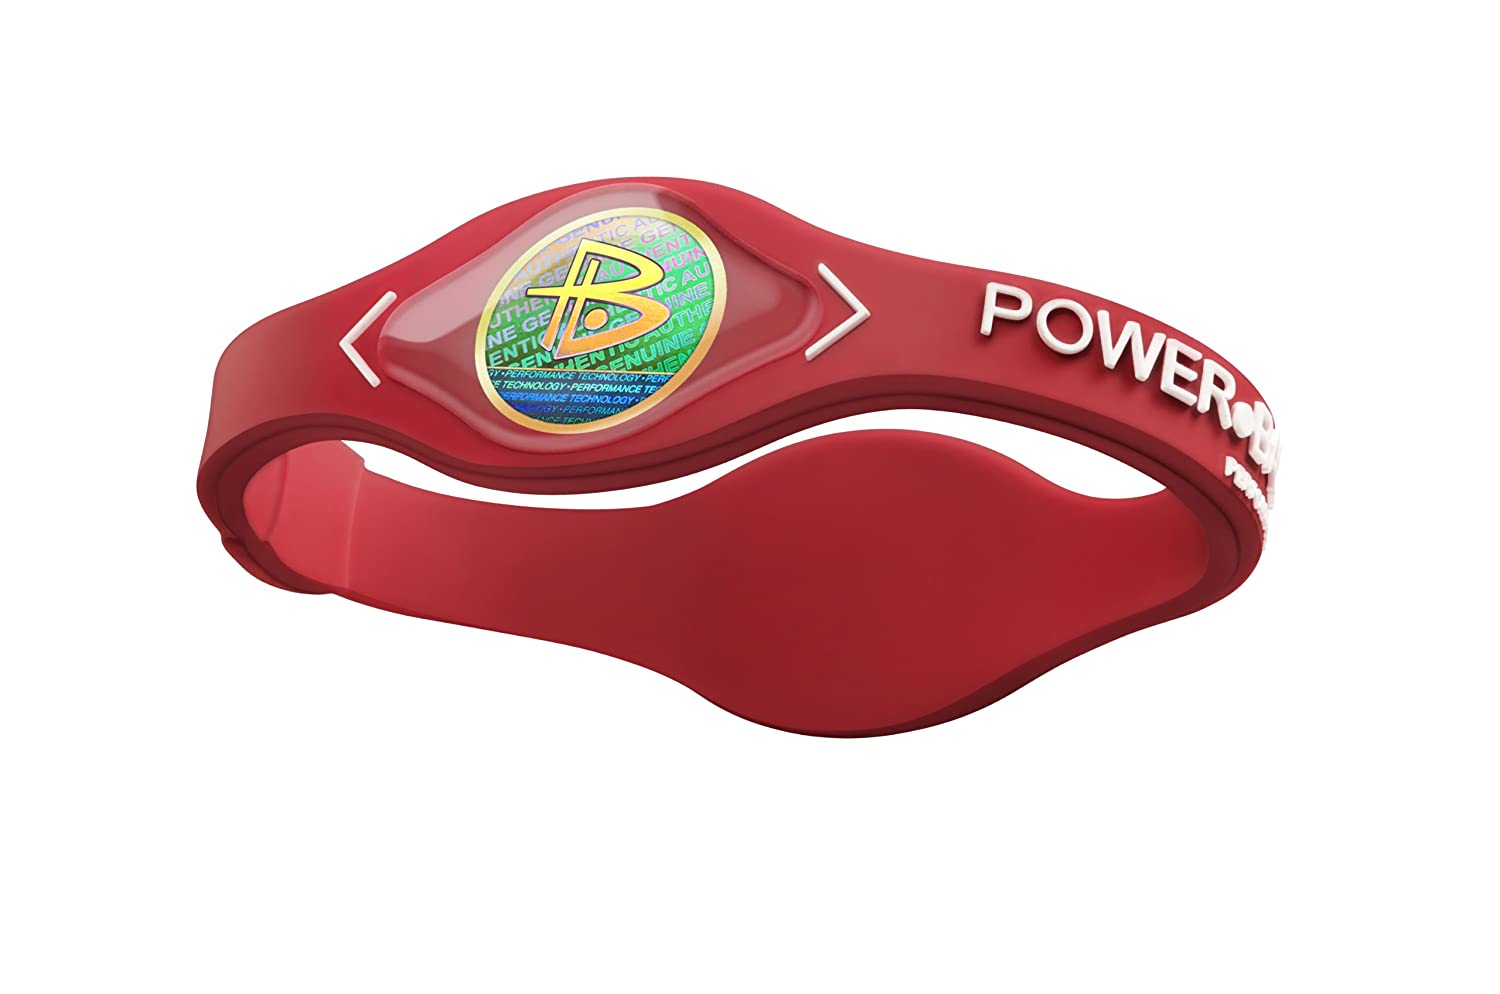 The power balance band Image credits: Amazon.com